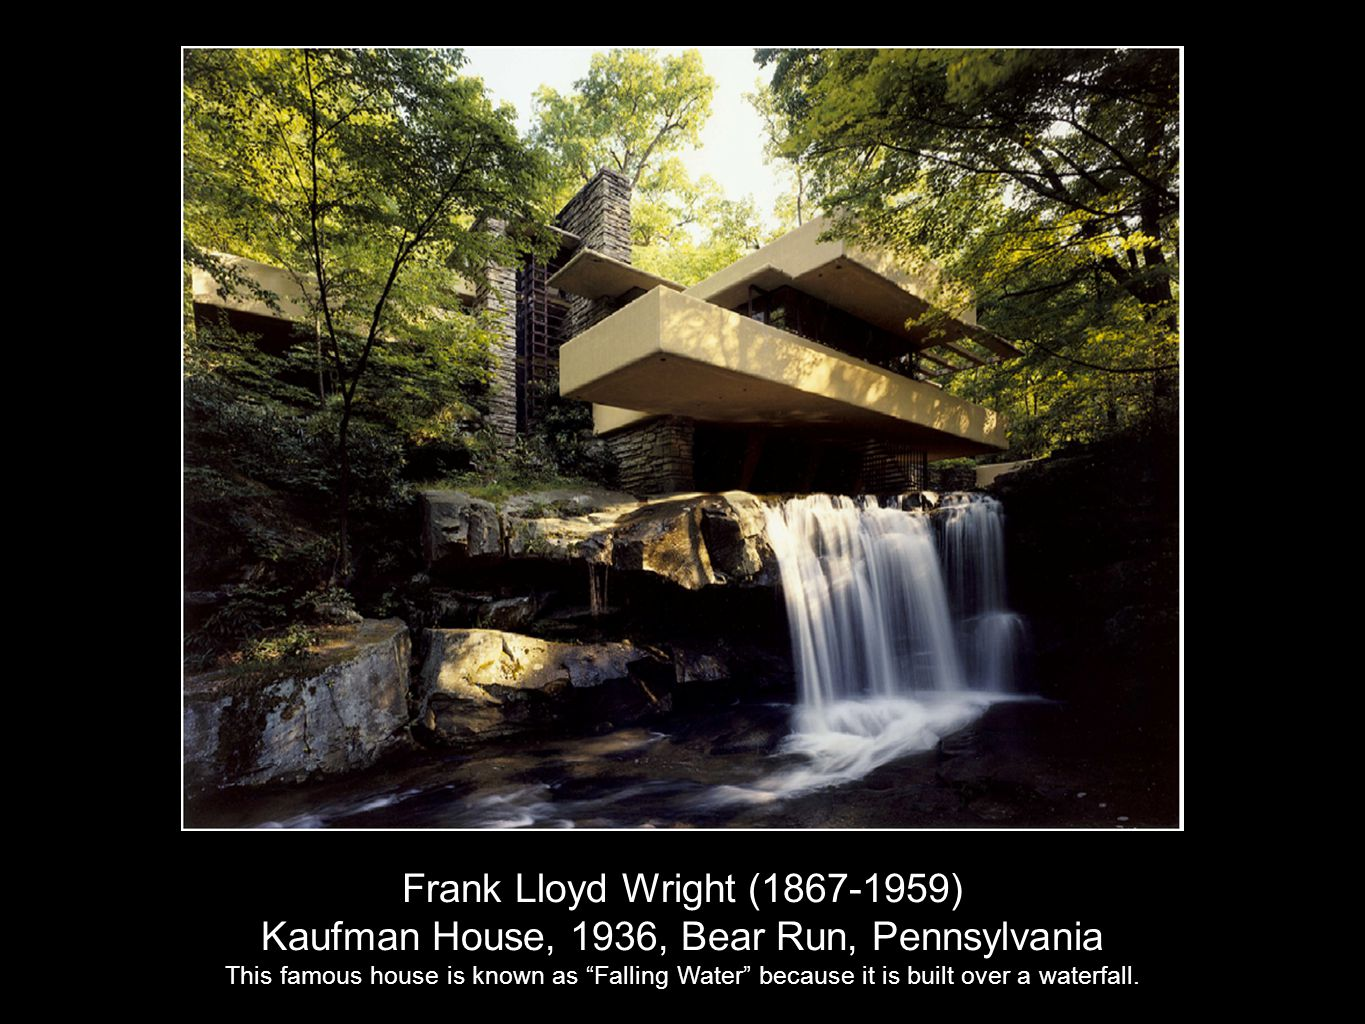 Kaufman House, 1936, Bear Run, Pennsylvania